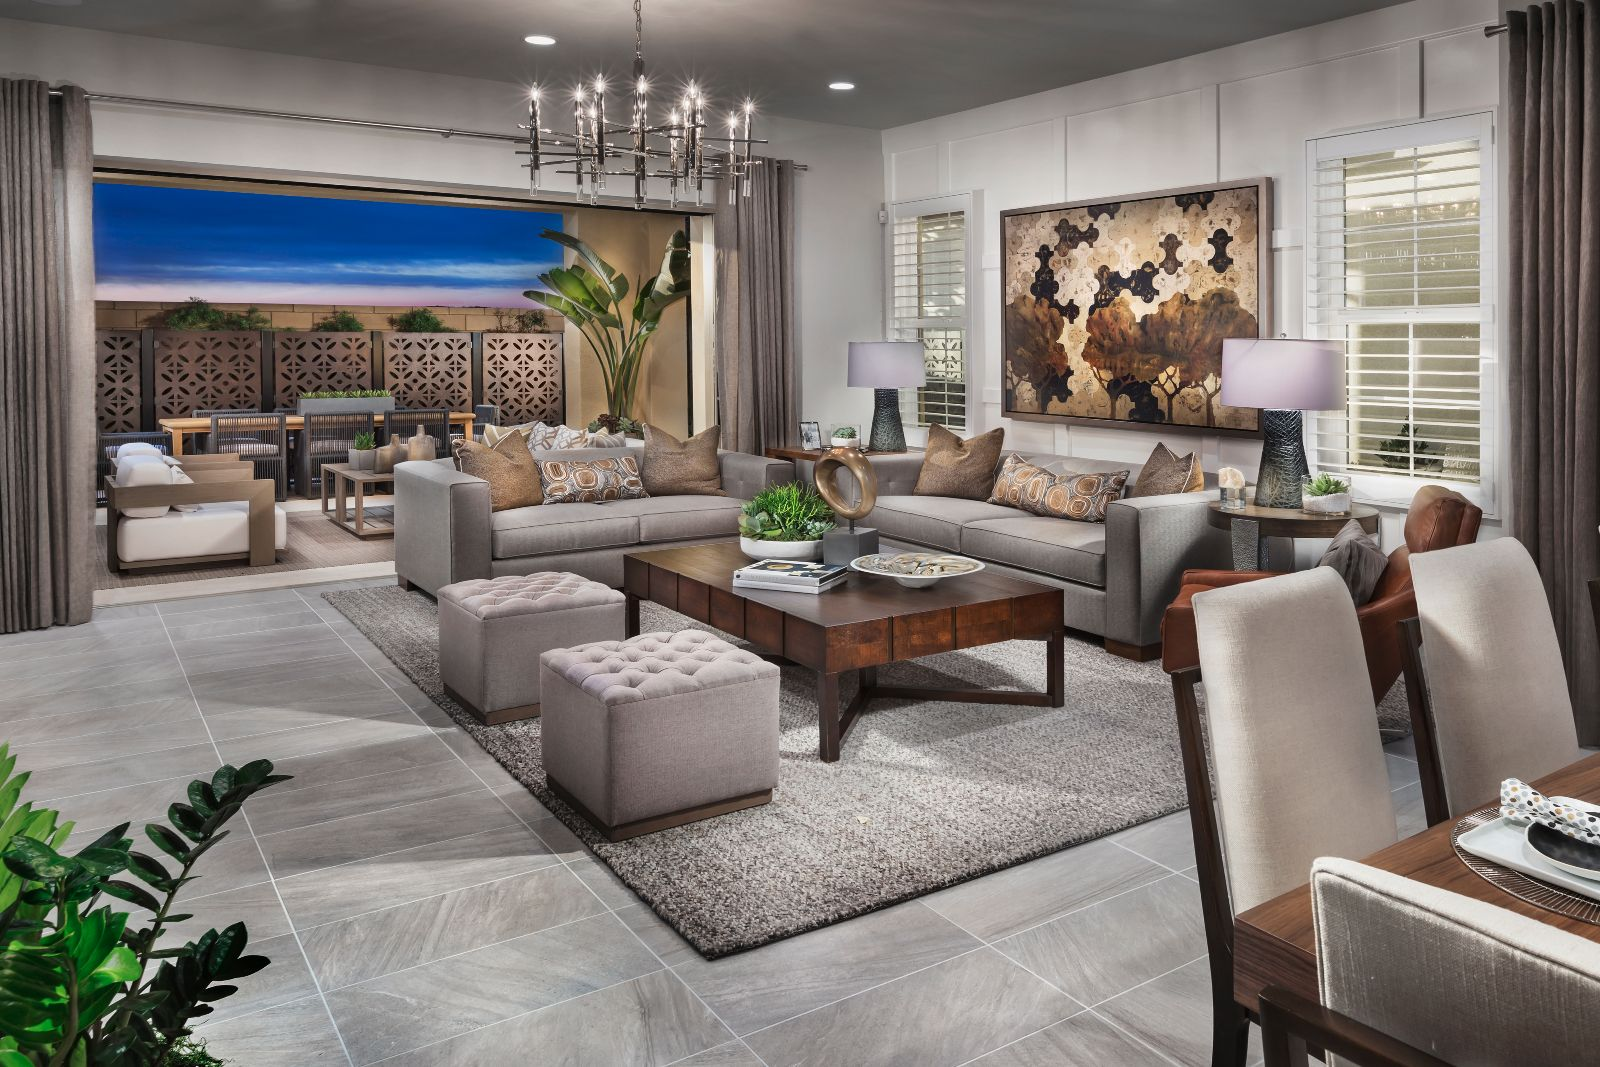 New Homes for Sale in Irvine